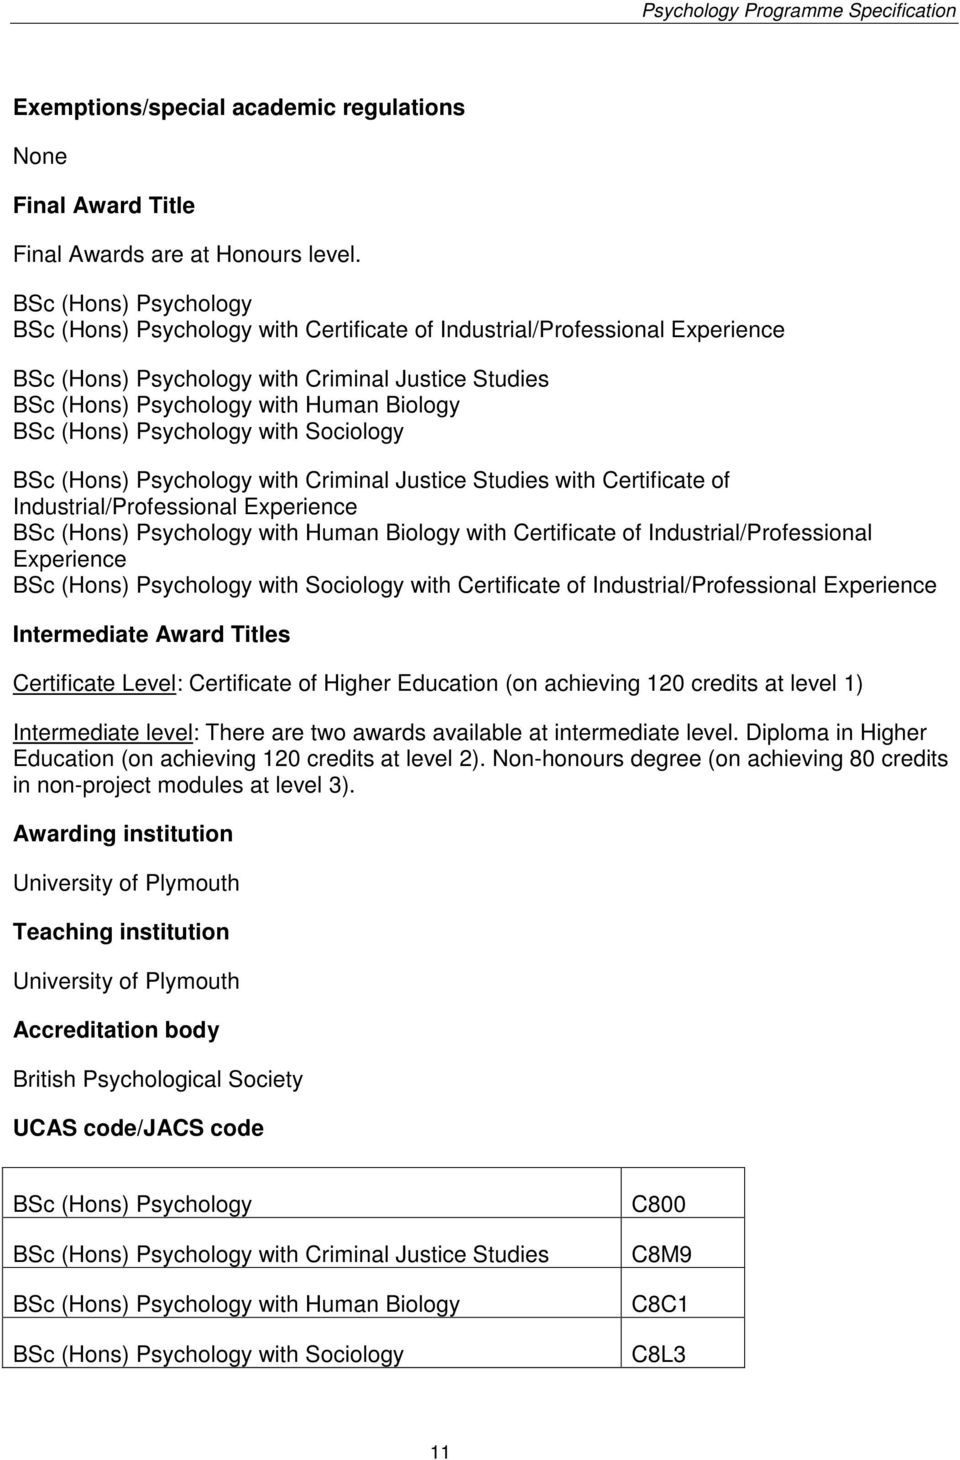 (Hons) Psychology with Sociology BSc (Hons) Psychology with Criminal Justice Studies with Certificate of Industrial/Professional Experience BSc (Hons) Psychology with Human Biology with Certificate